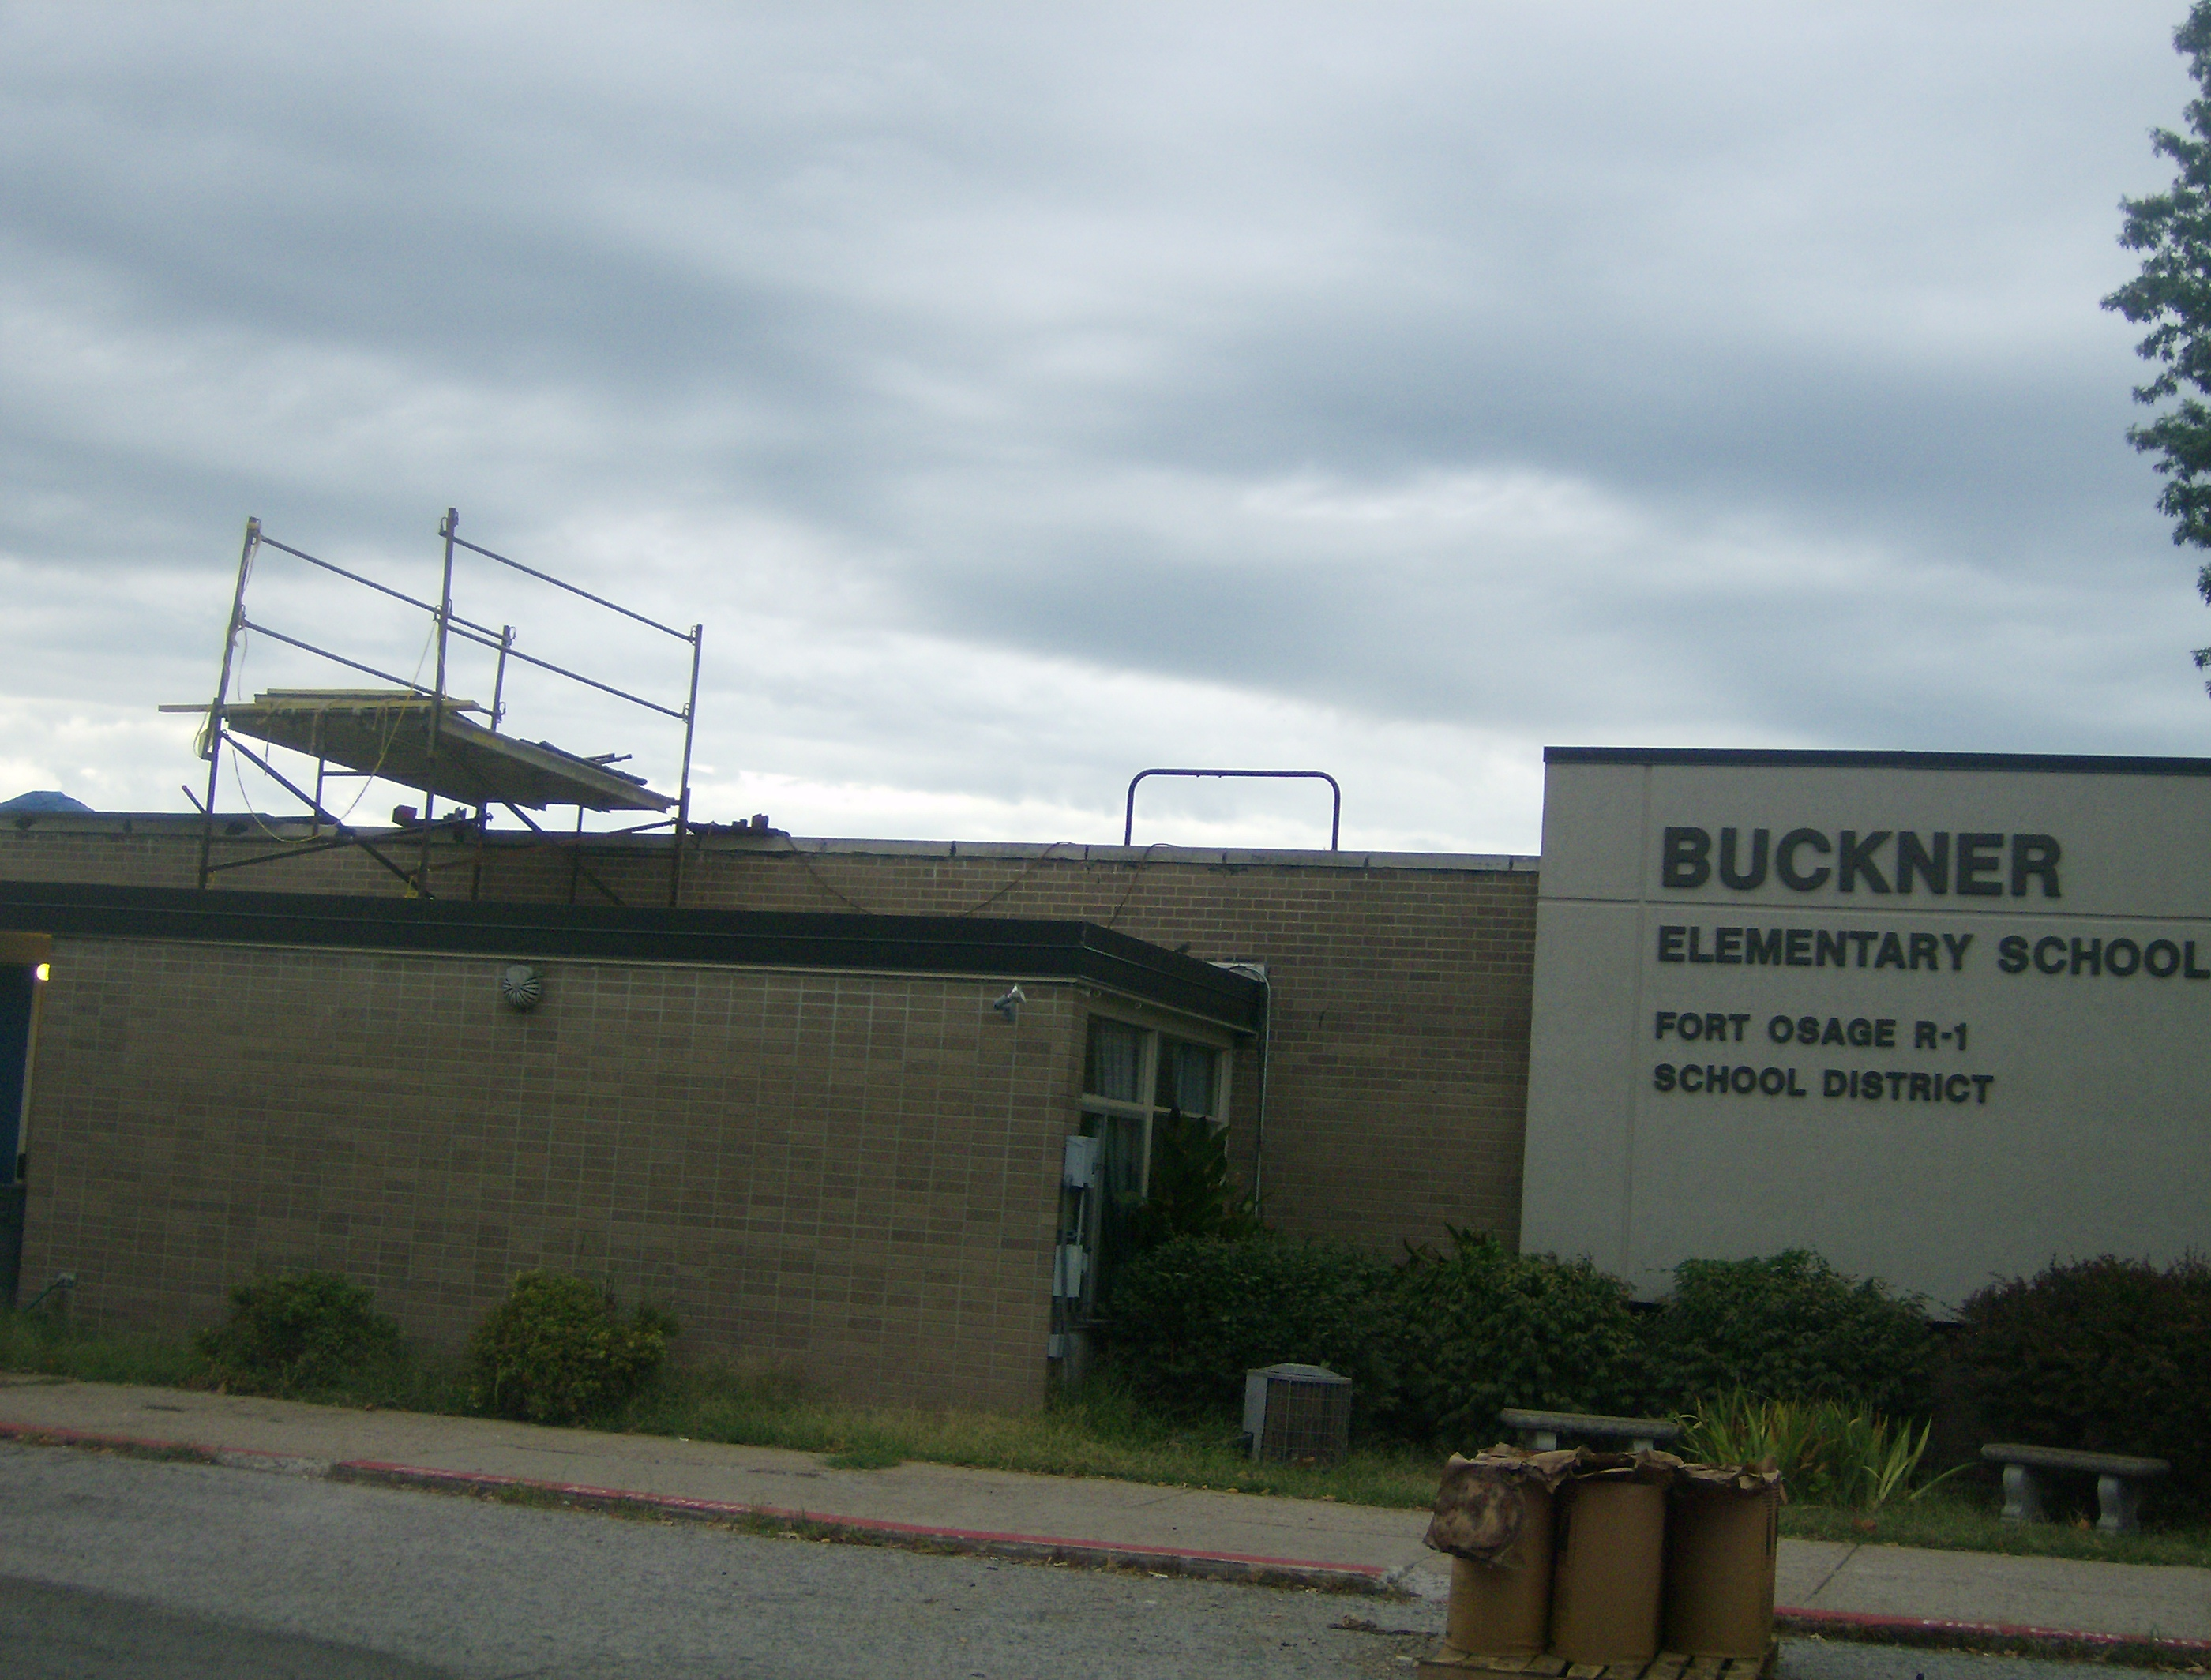 Buckner elementary has new roof as promised in a timely manner